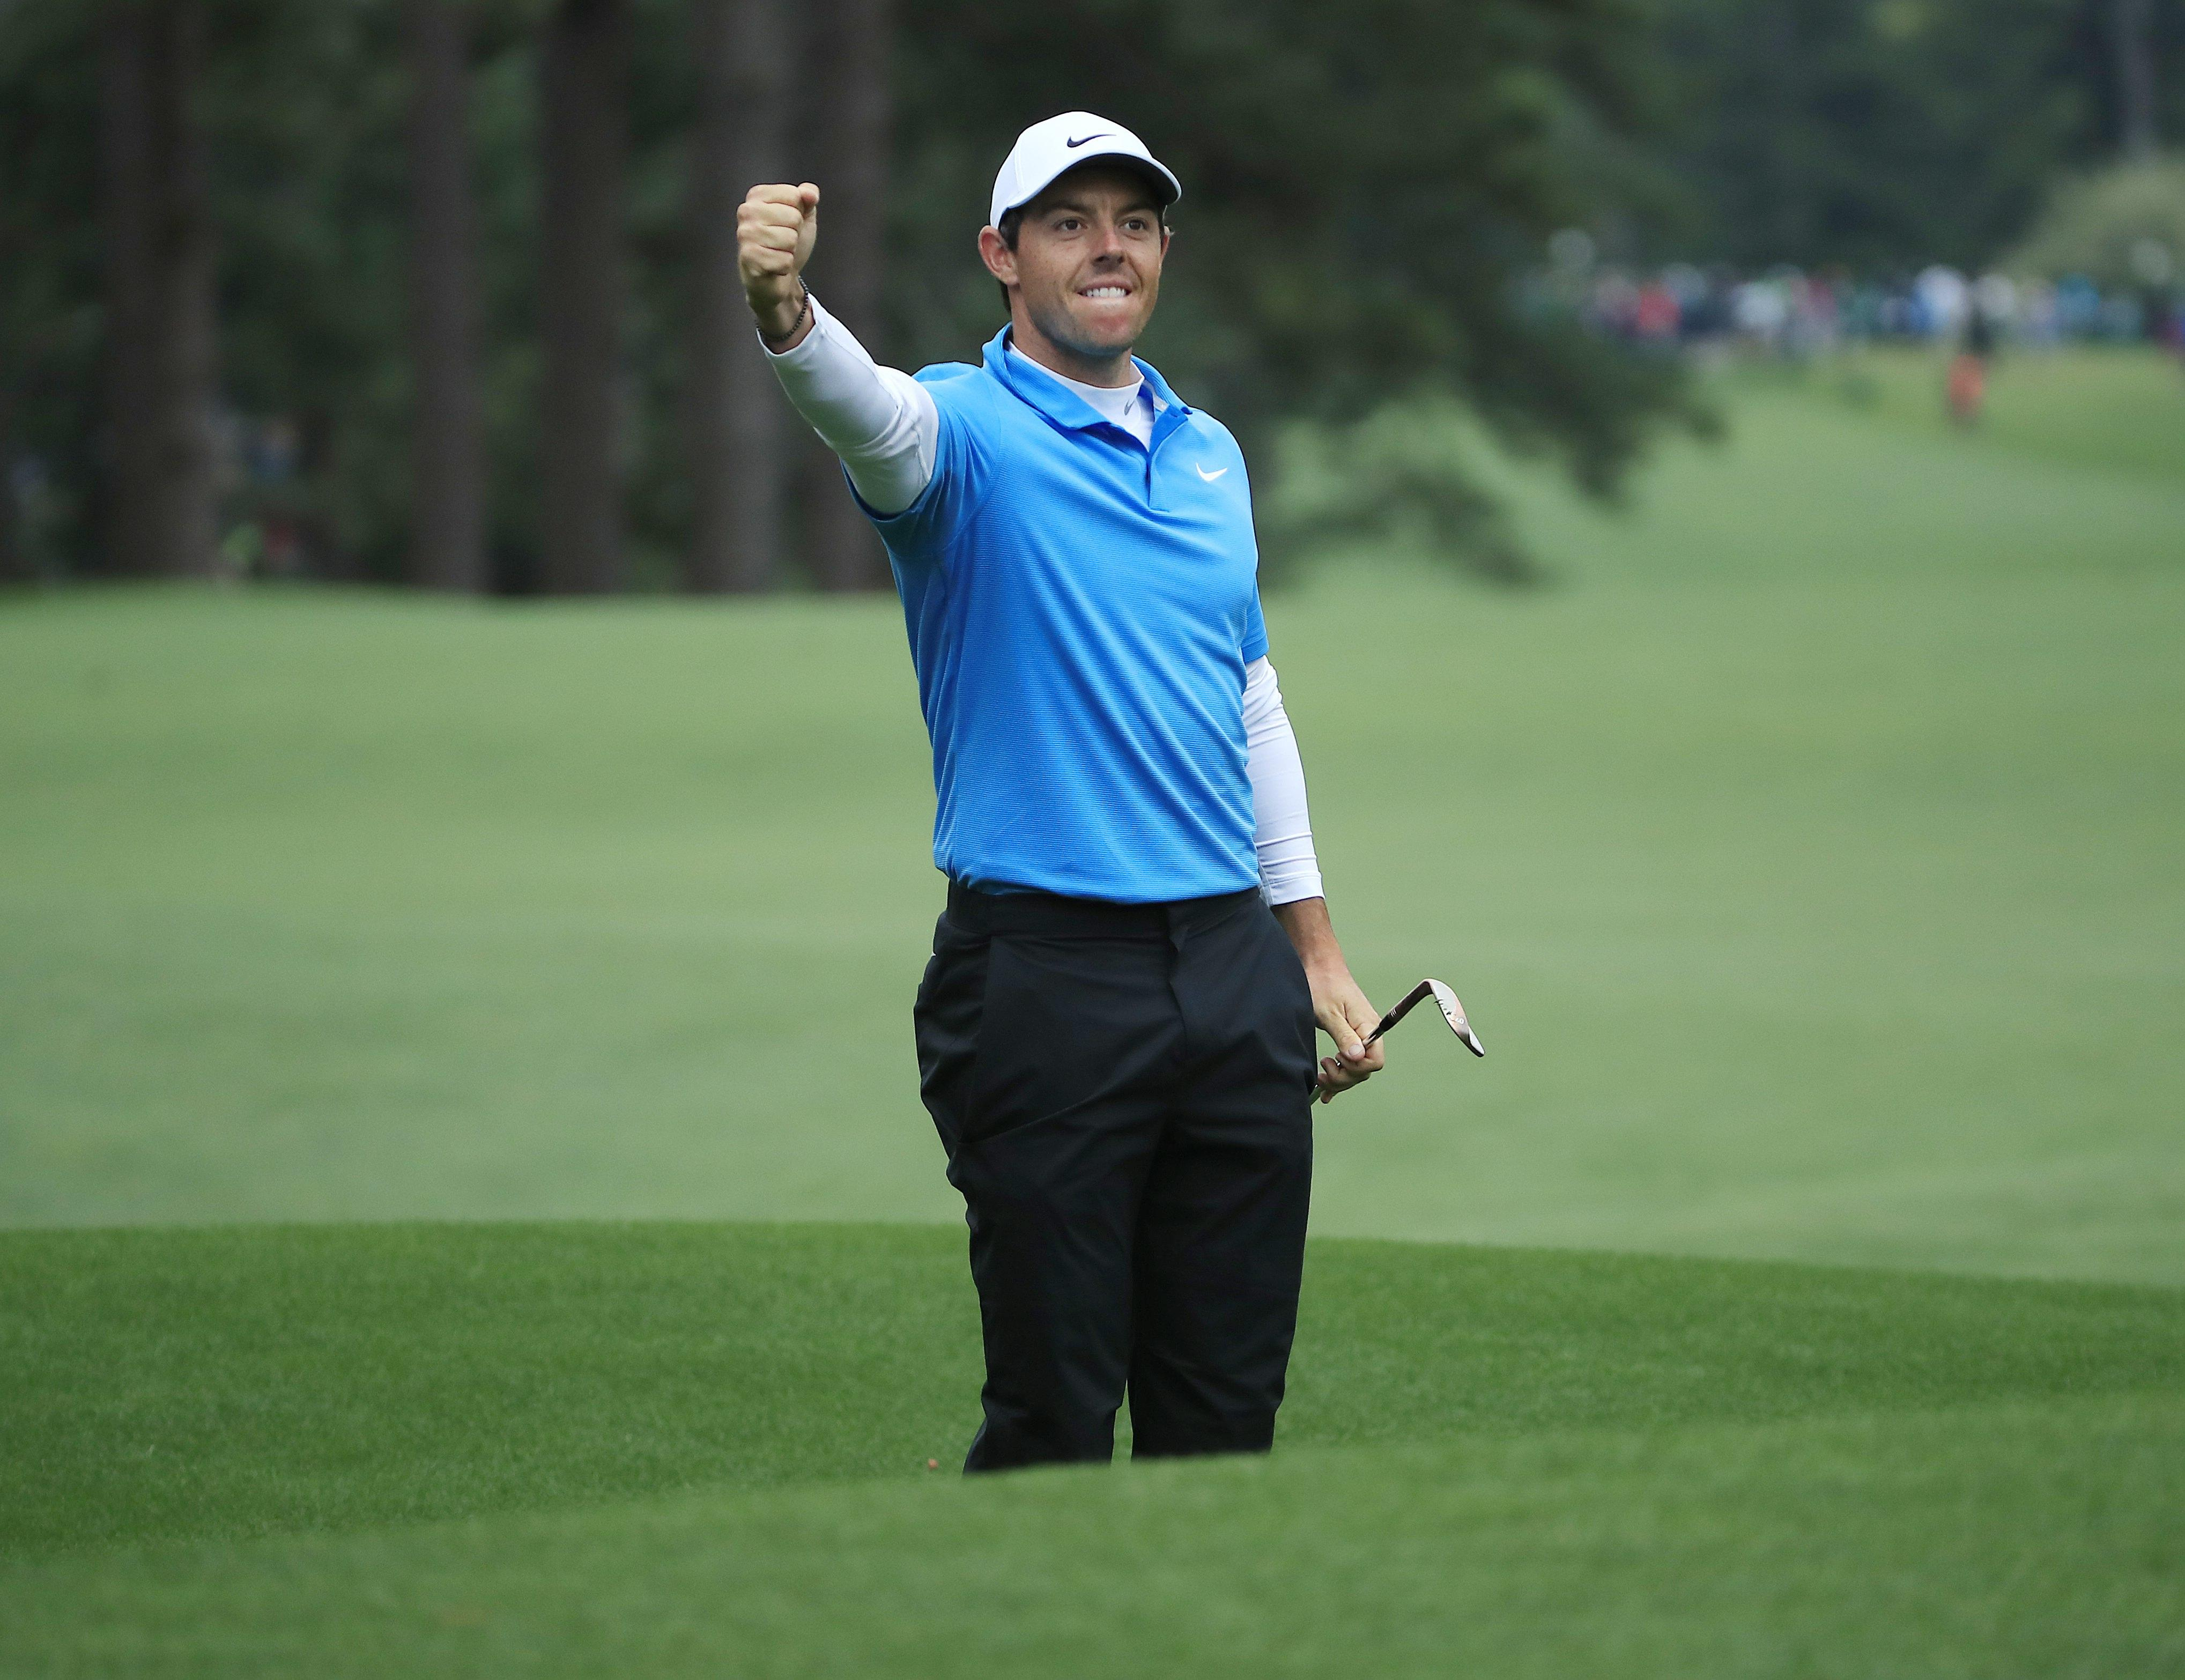 Rory mcIlroy fist pumps after a stunning eagle on the 8th hole during the third round of the Masters